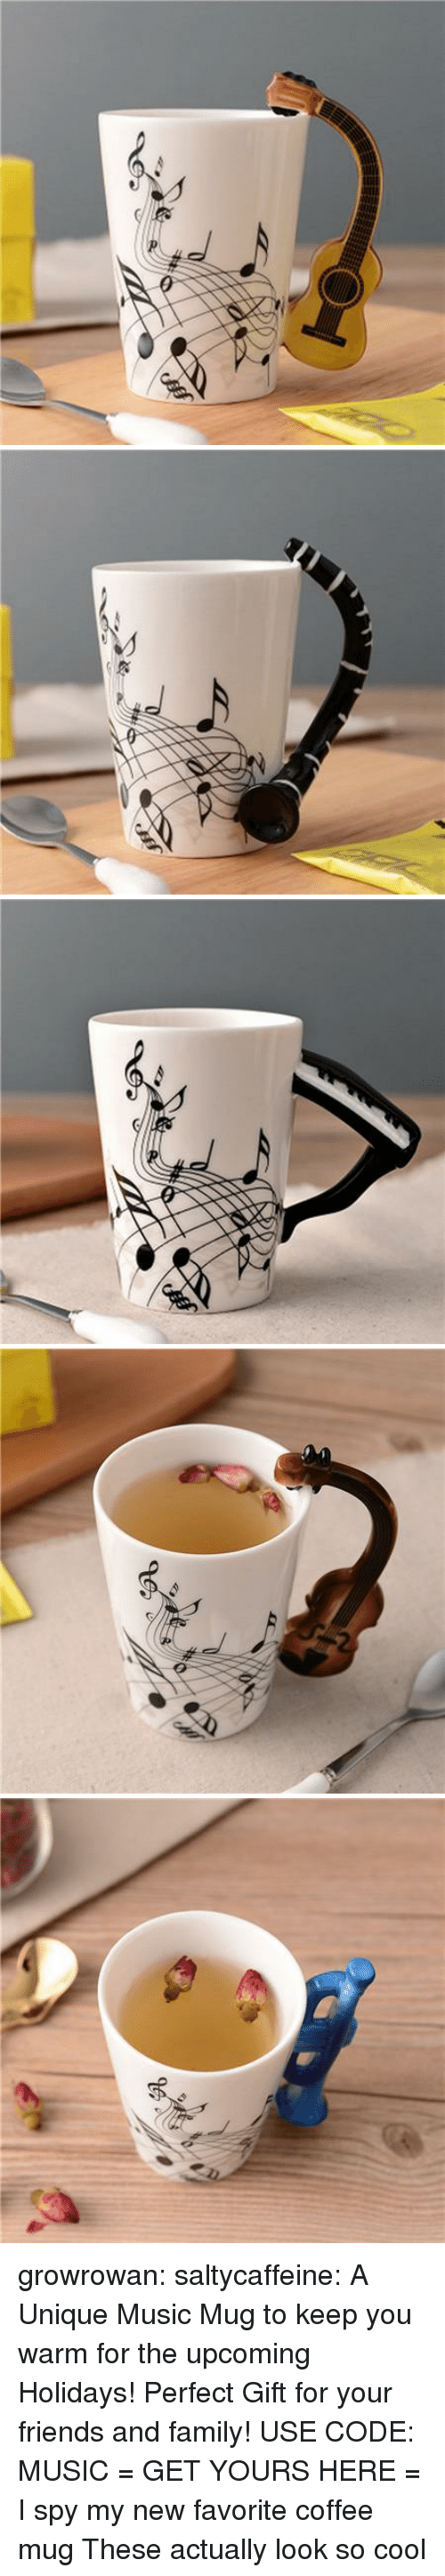 Coffee Mug: growrowan:  saltycaffeine: A Unique Music Mug to keep you warm for the upcoming Holidays! Perfect Gift for your friends and family! USE CODE: MUSIC = GET YOURS HERE =   I spy my new favorite coffee mug  These actually look so cool